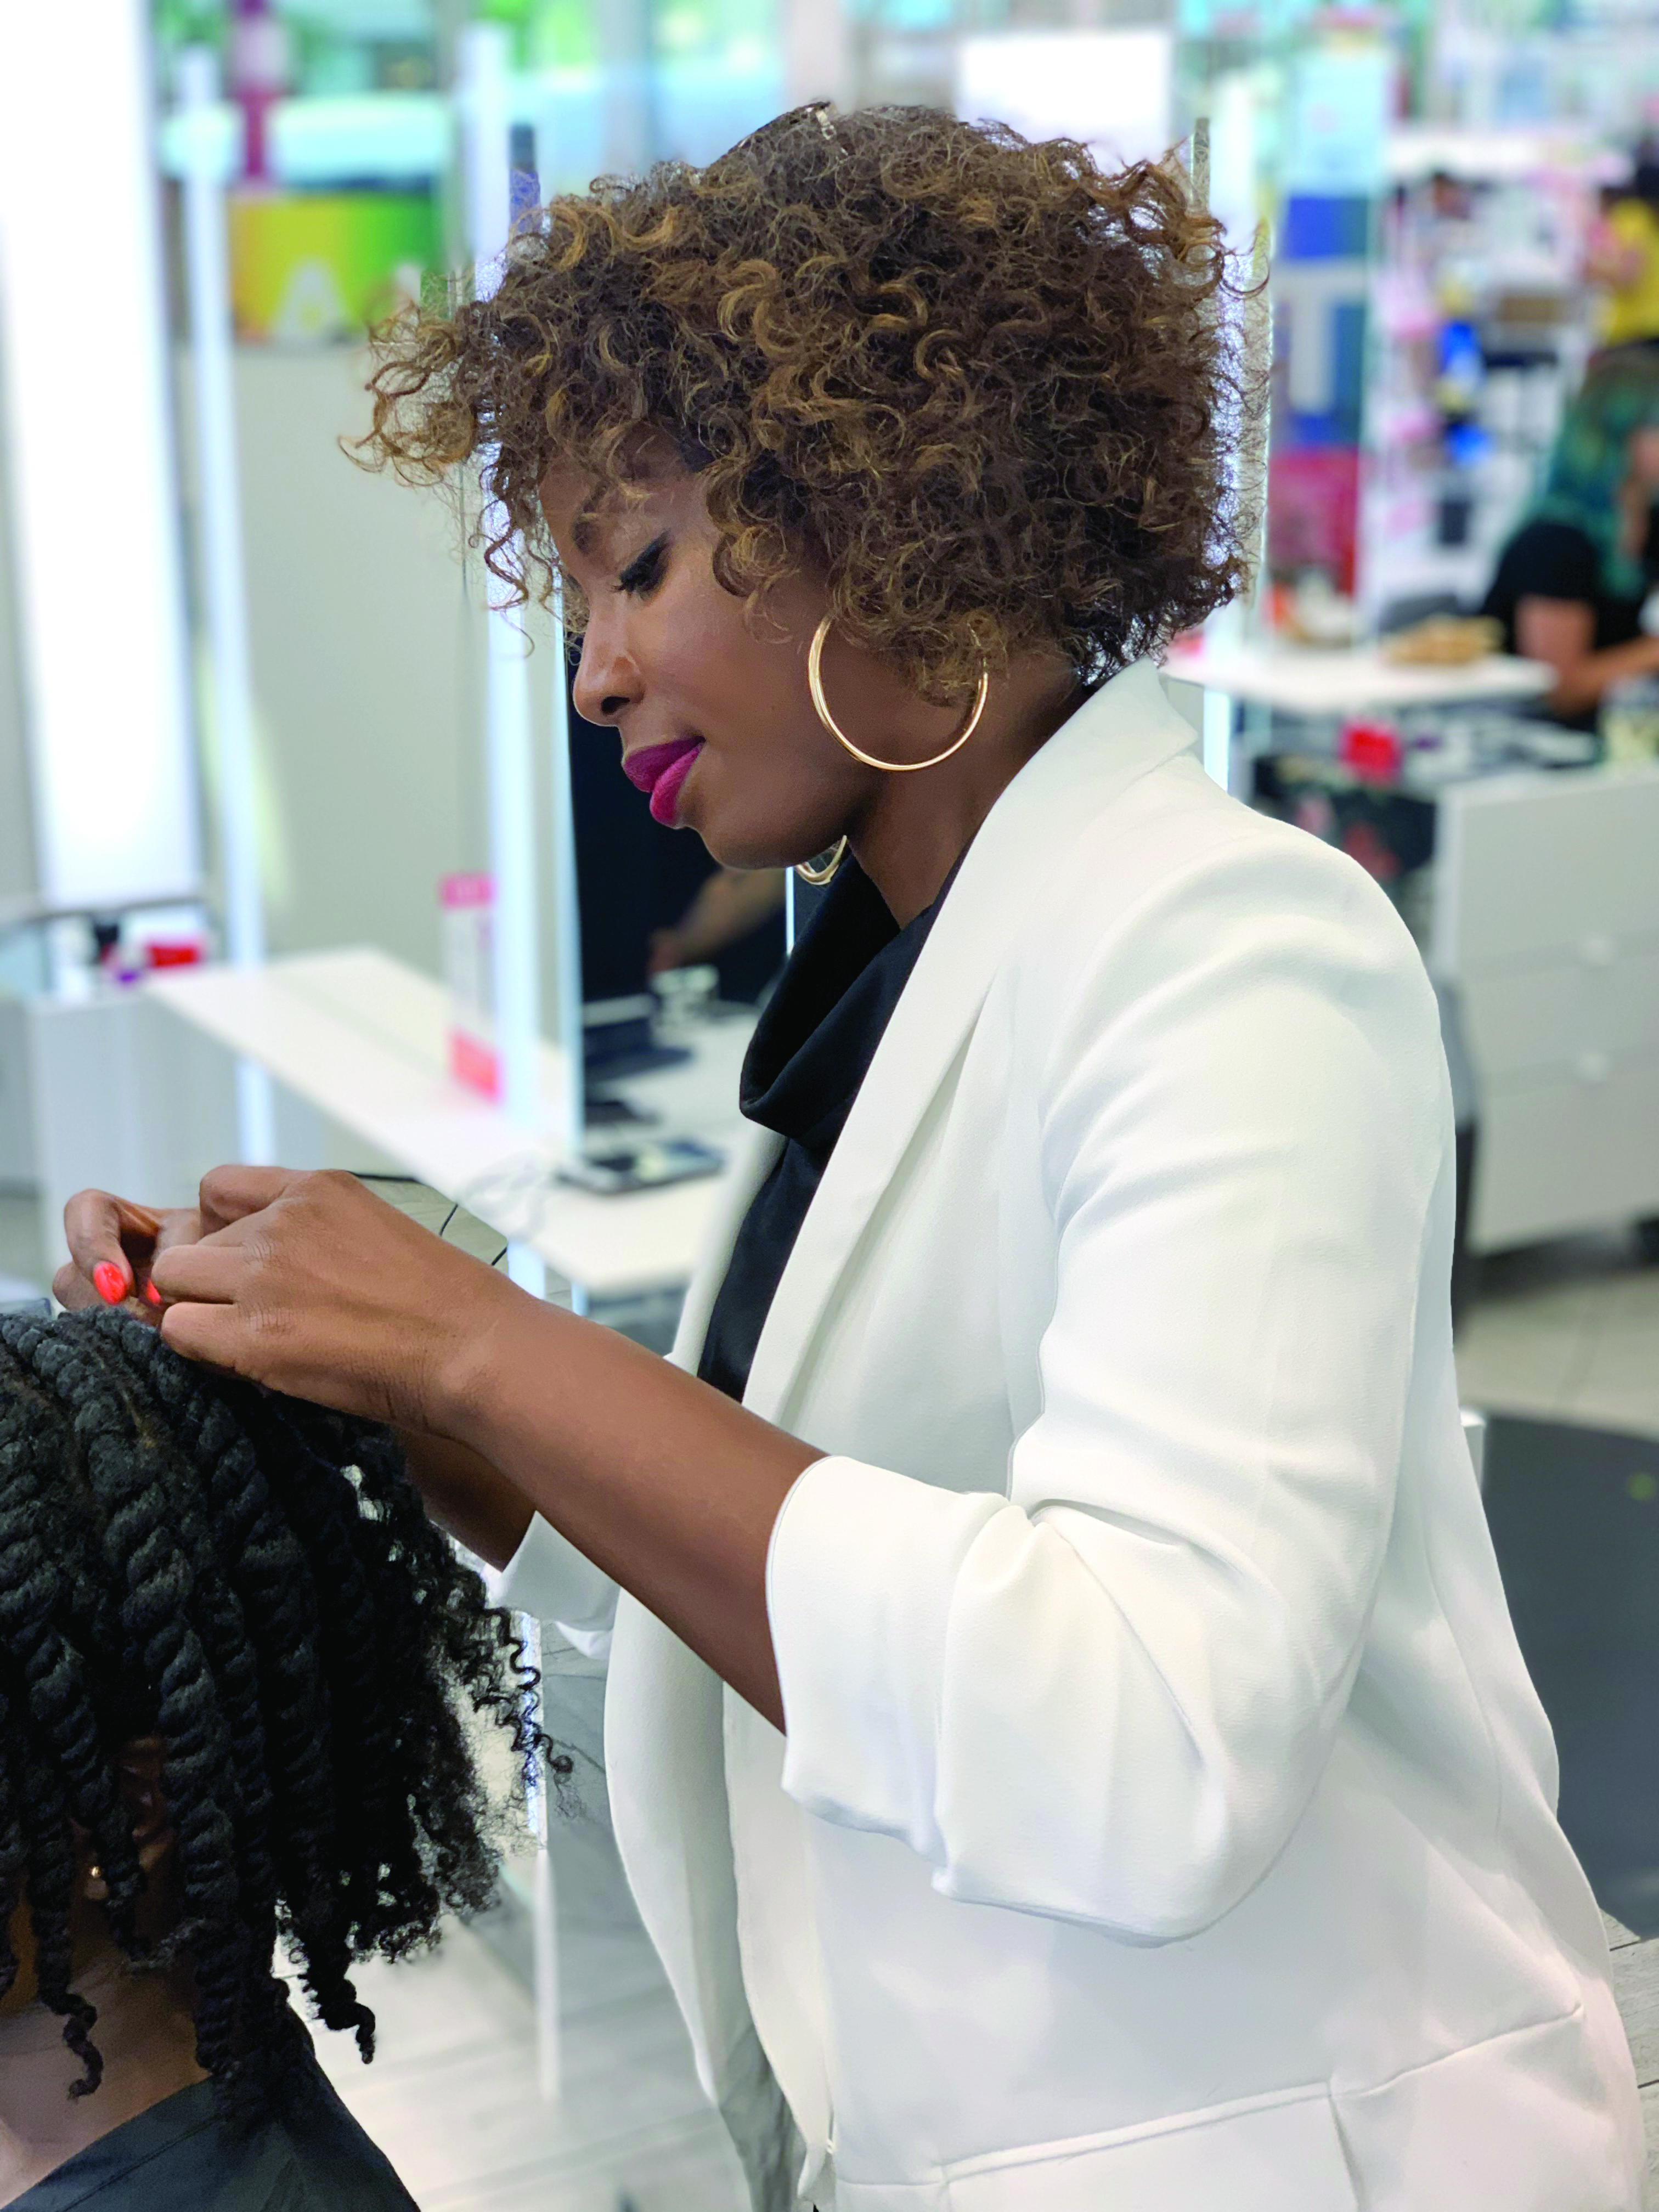 Ulta Beauty Pro Team member Pekela Riley discussed the need for artists to embrace all textures and shared how to get curl confidence. -